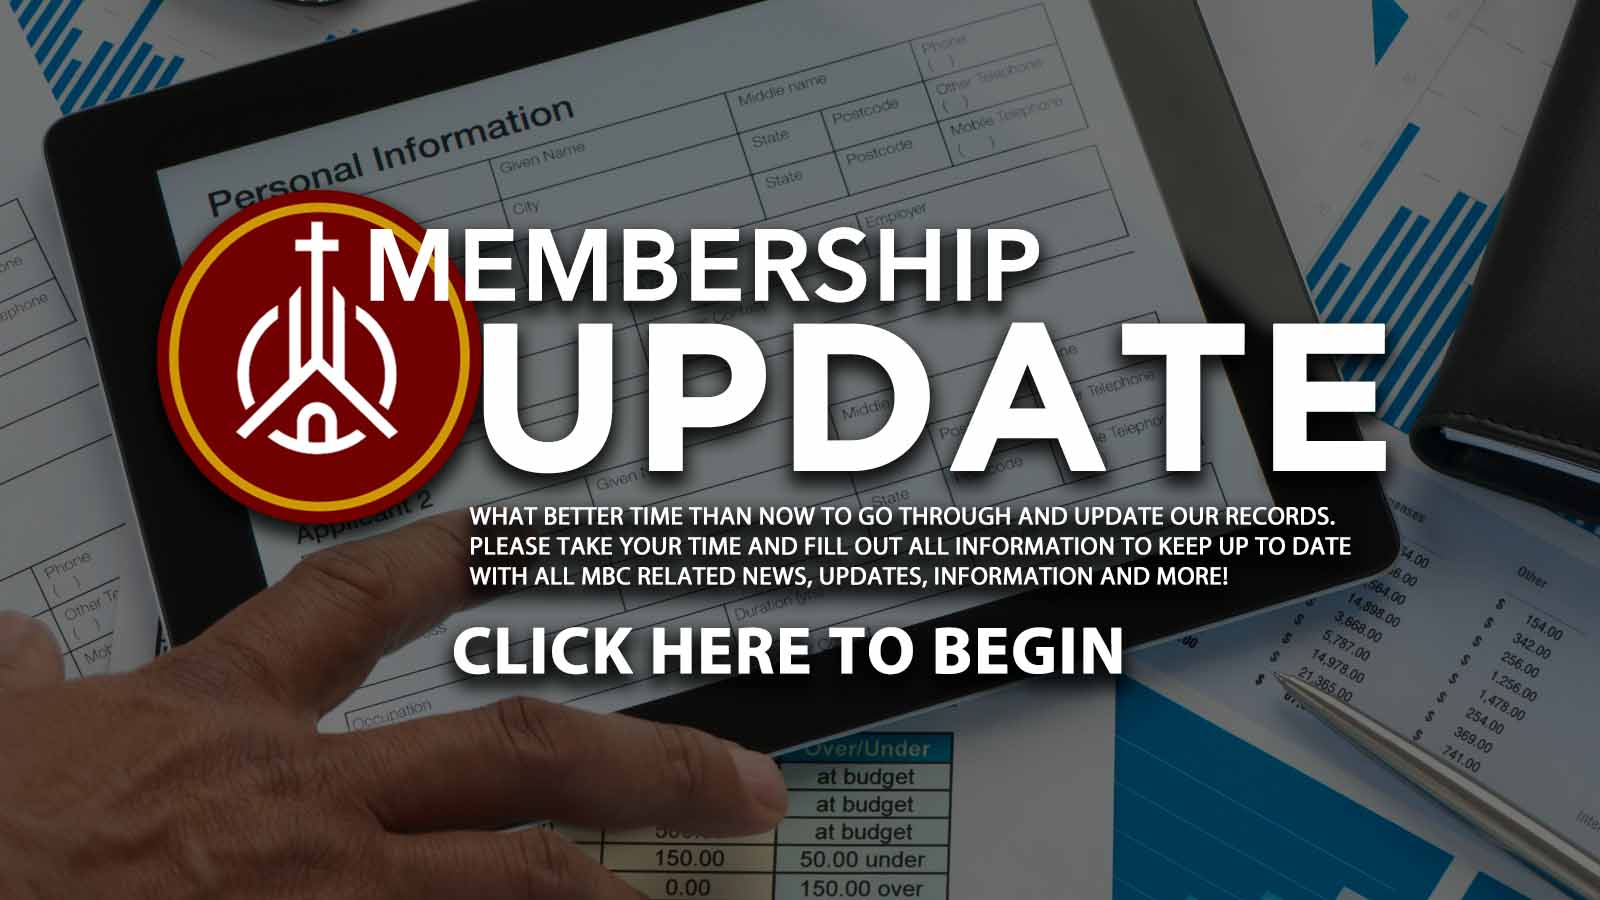 Membership Update copy